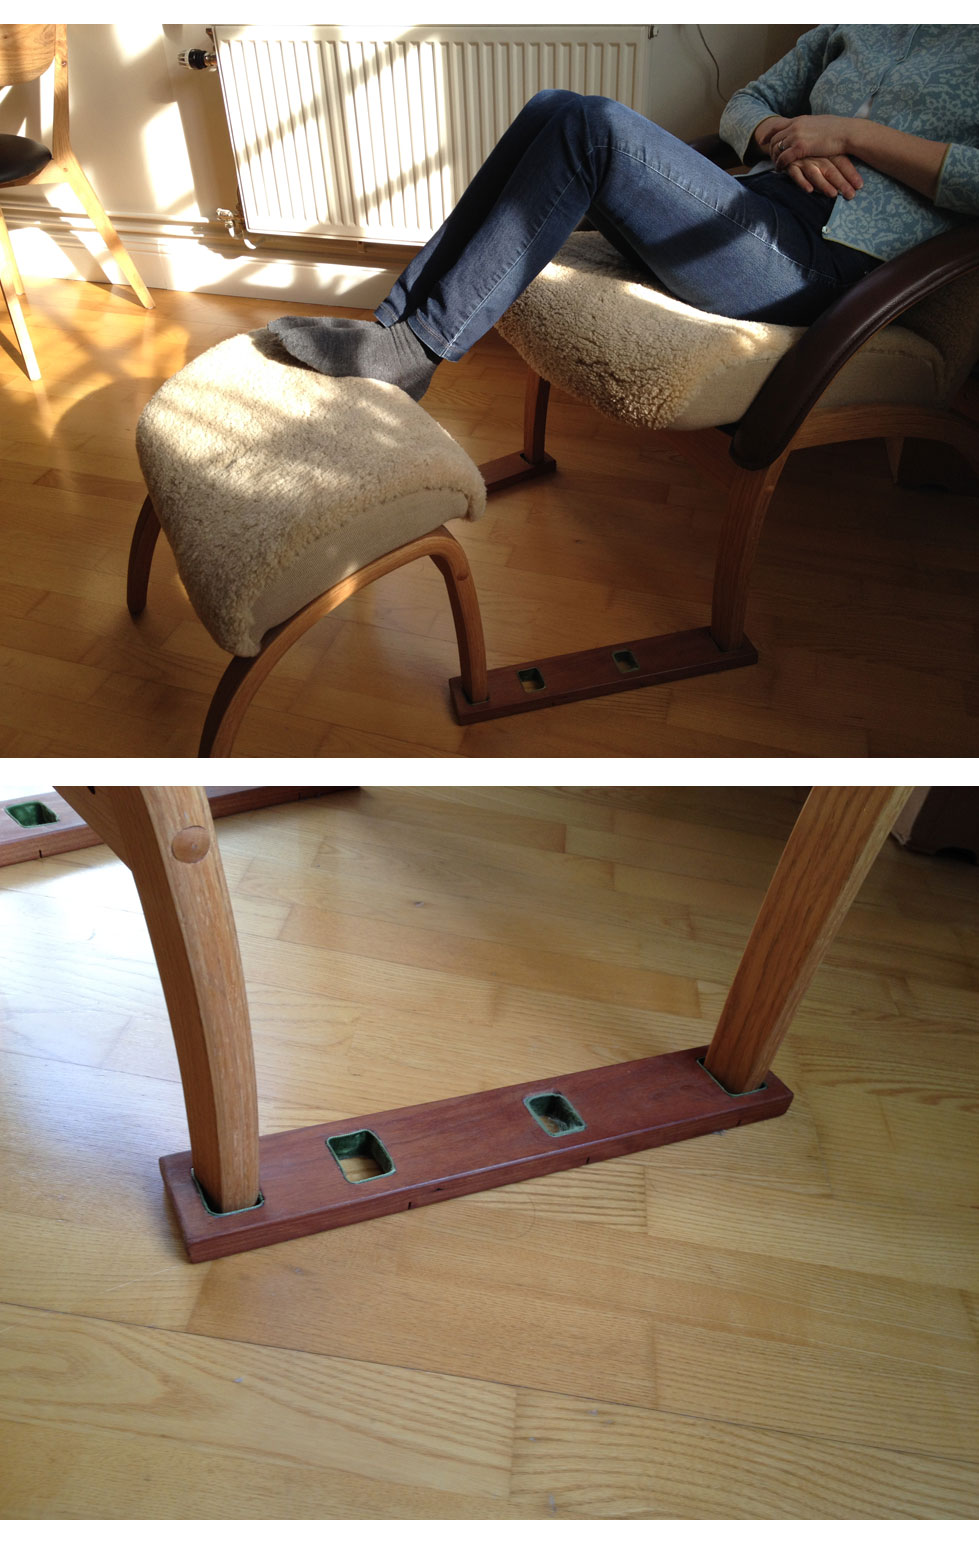 Prevent the footrest from sliding away from the chair : lifehacks